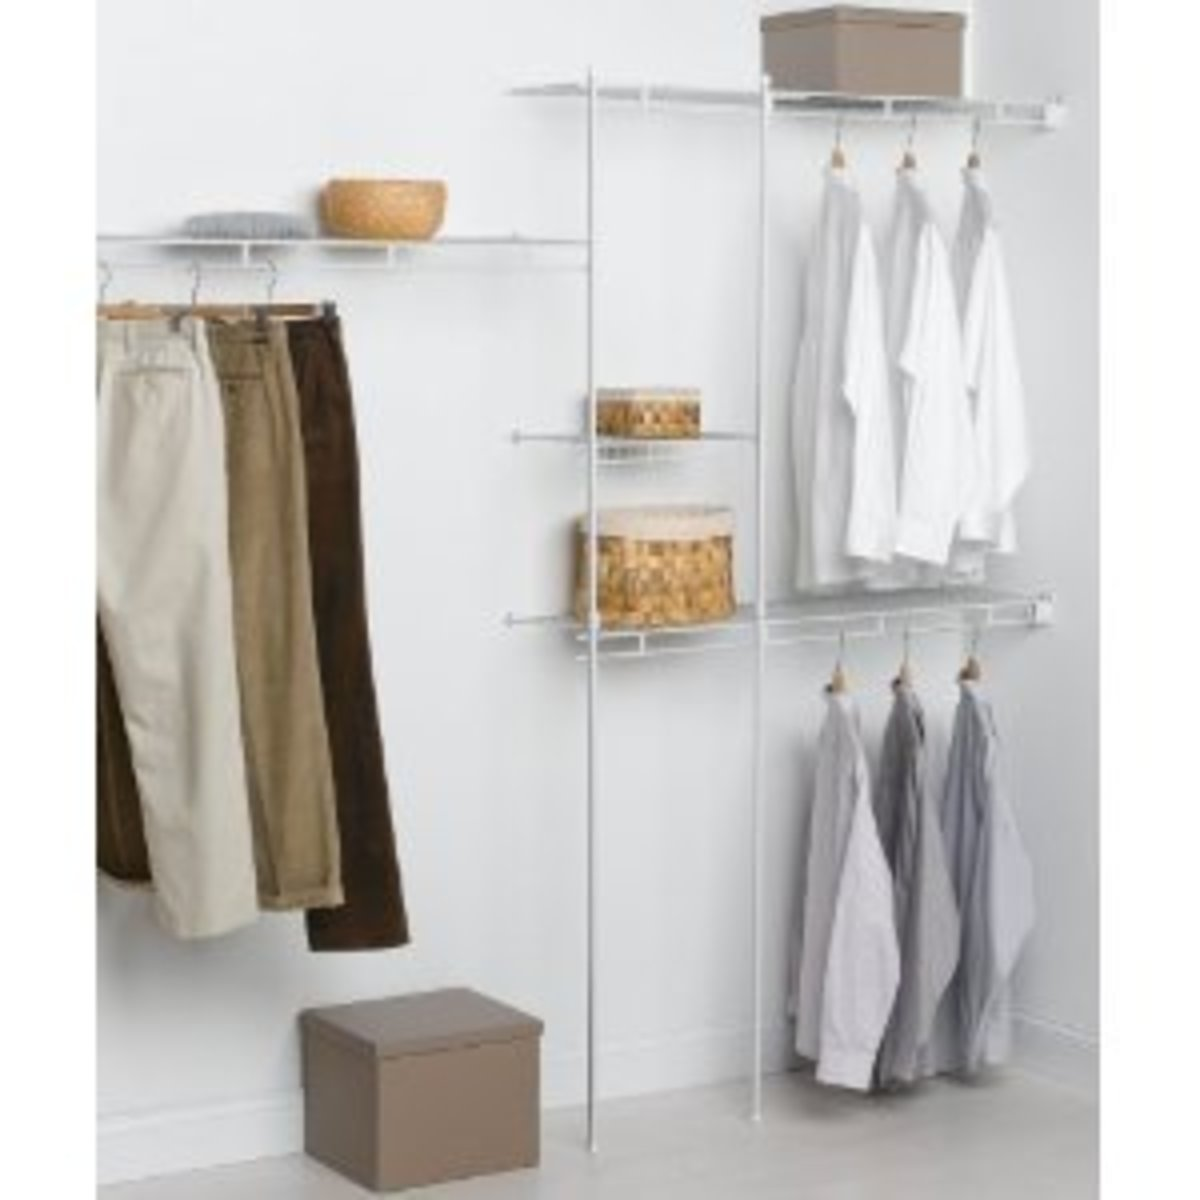 Keep your hand-me-downs tidy in the closet.